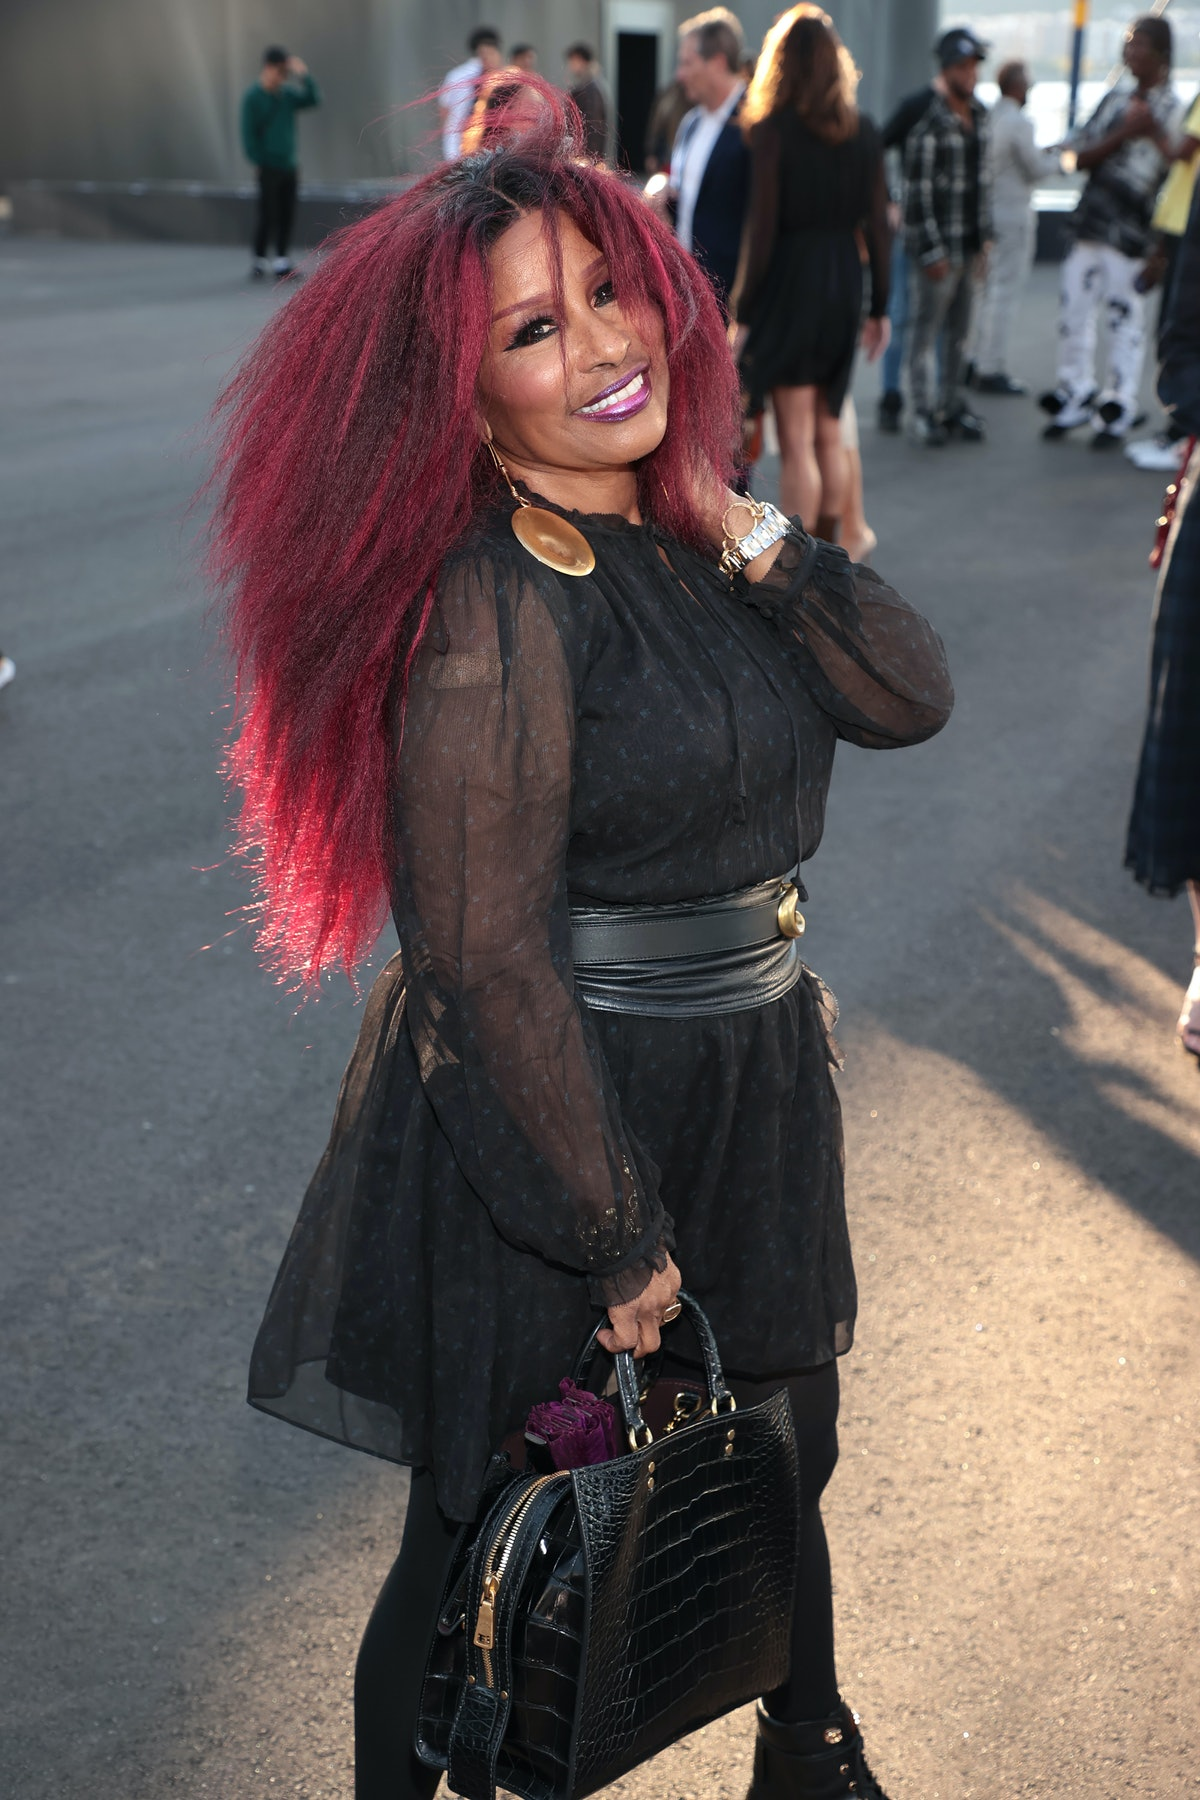 Chaka Khan attends Coach during NYFW: The Shows on September 10, 2021 in New York City.